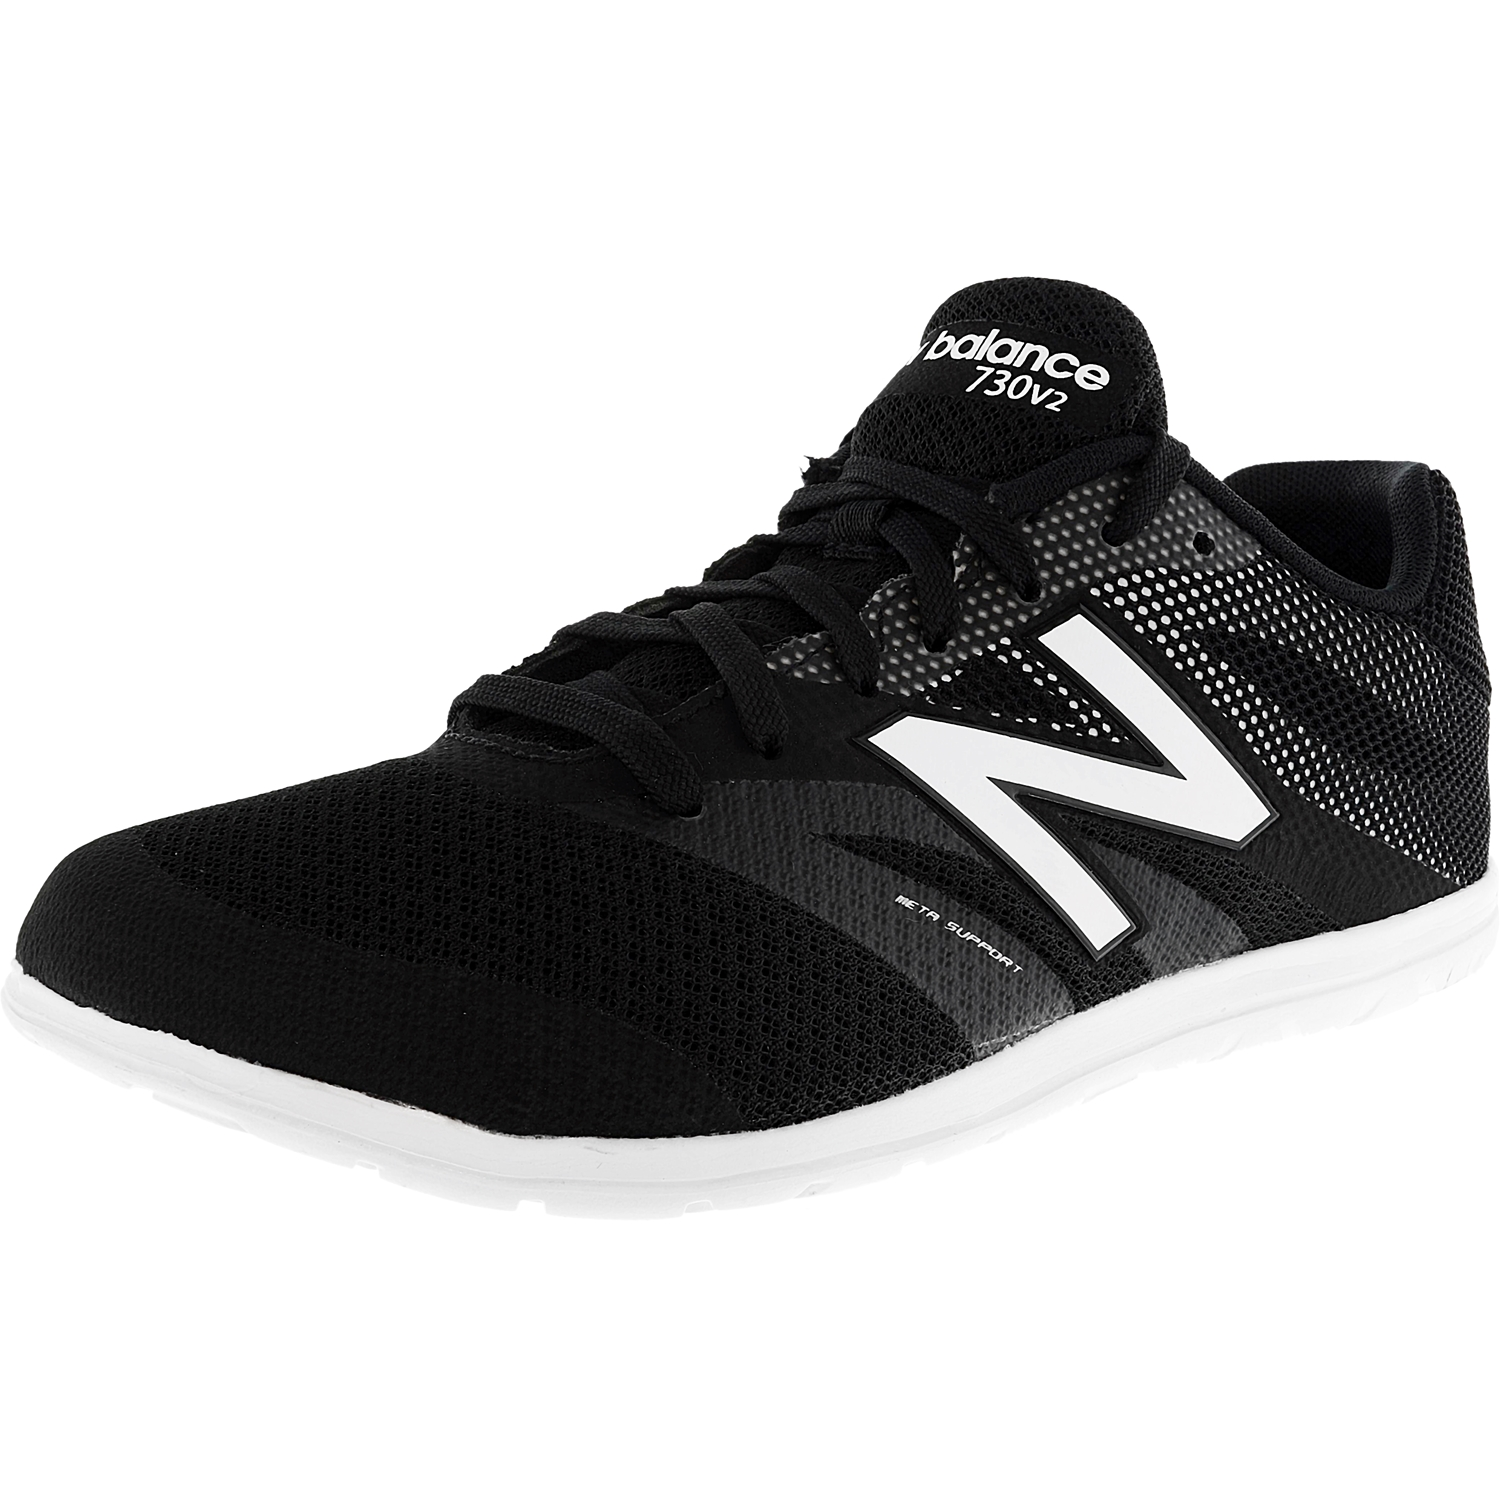 New Balance Women's Trainer Wx730 Bk2 Ankle-High Cross Trainer Women's Shoe - 6.5W e7fa27